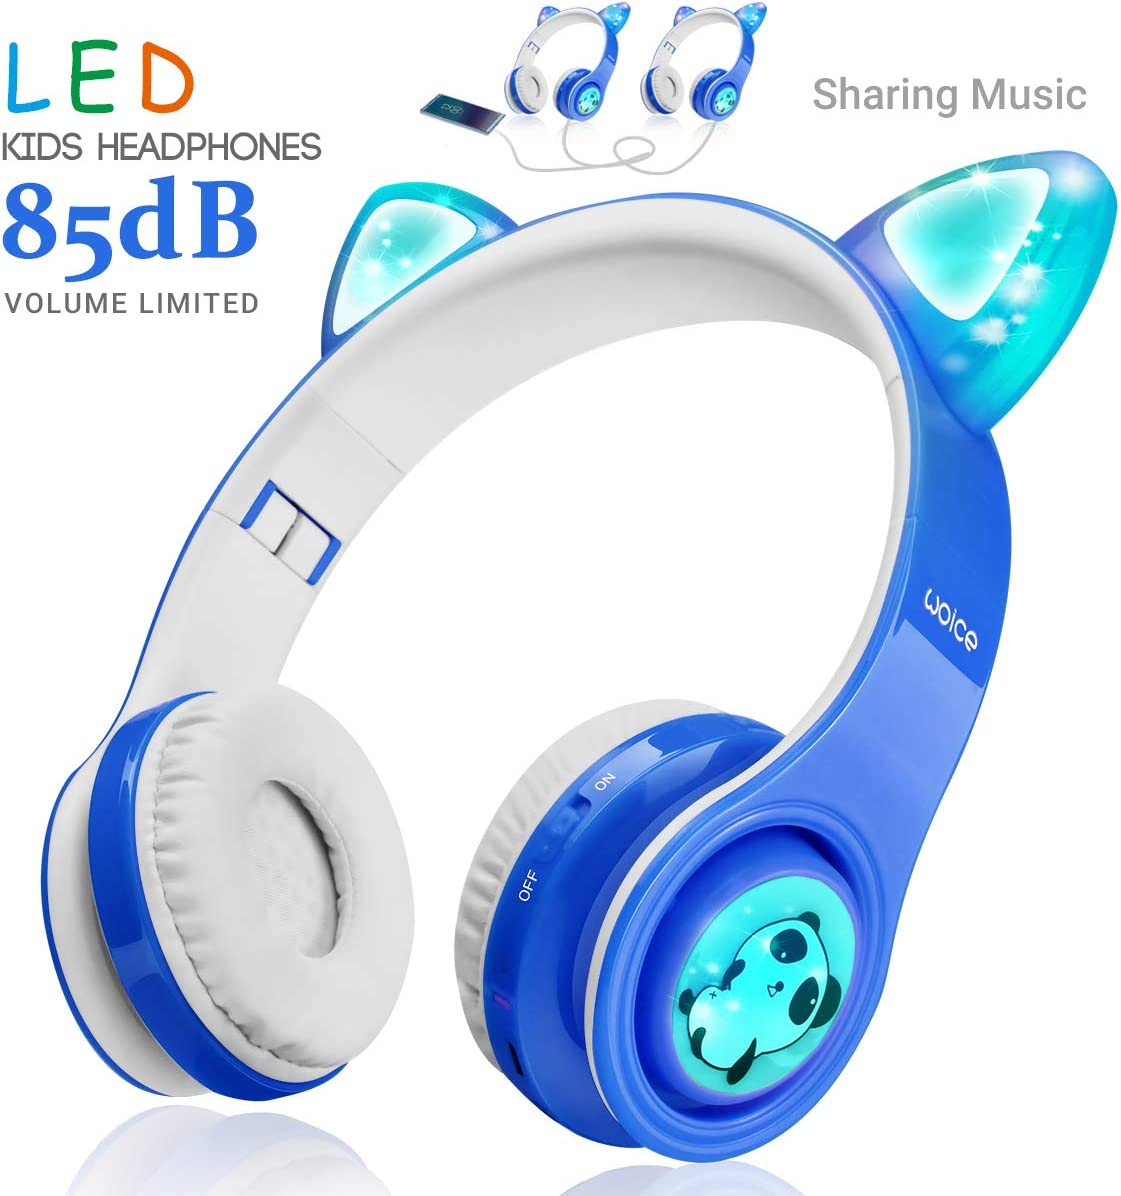 WOICE Wireless Bluetooth Kids Headphones, LED Flashing Lights, Music Sharing Function, 85db Volume Limited, Over-Ear and Build-in Mic Wireless/Wired Children Headphones for Boys Girls (Blue)